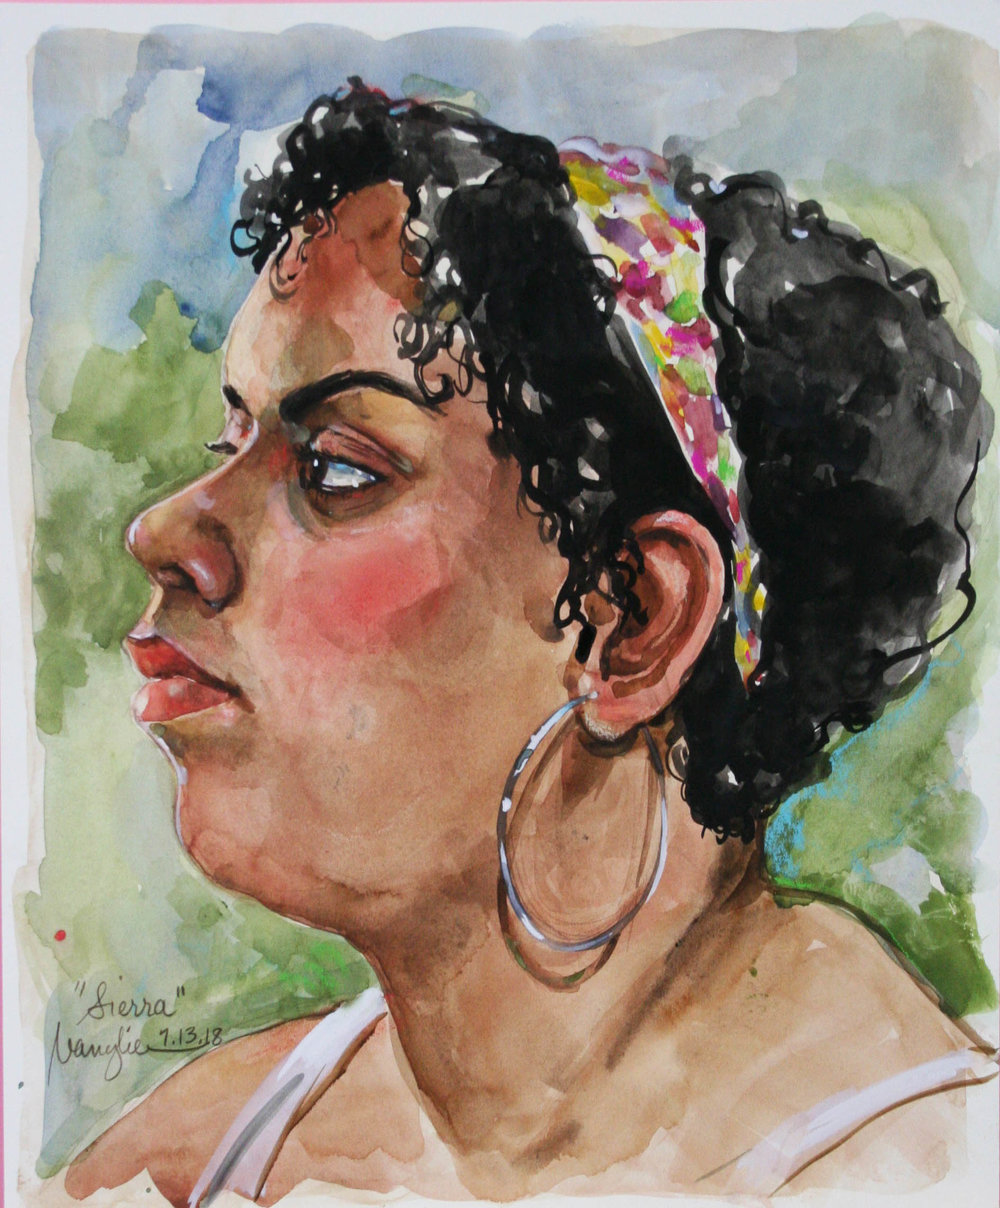 Nancy Lick did this watercolor drawing.